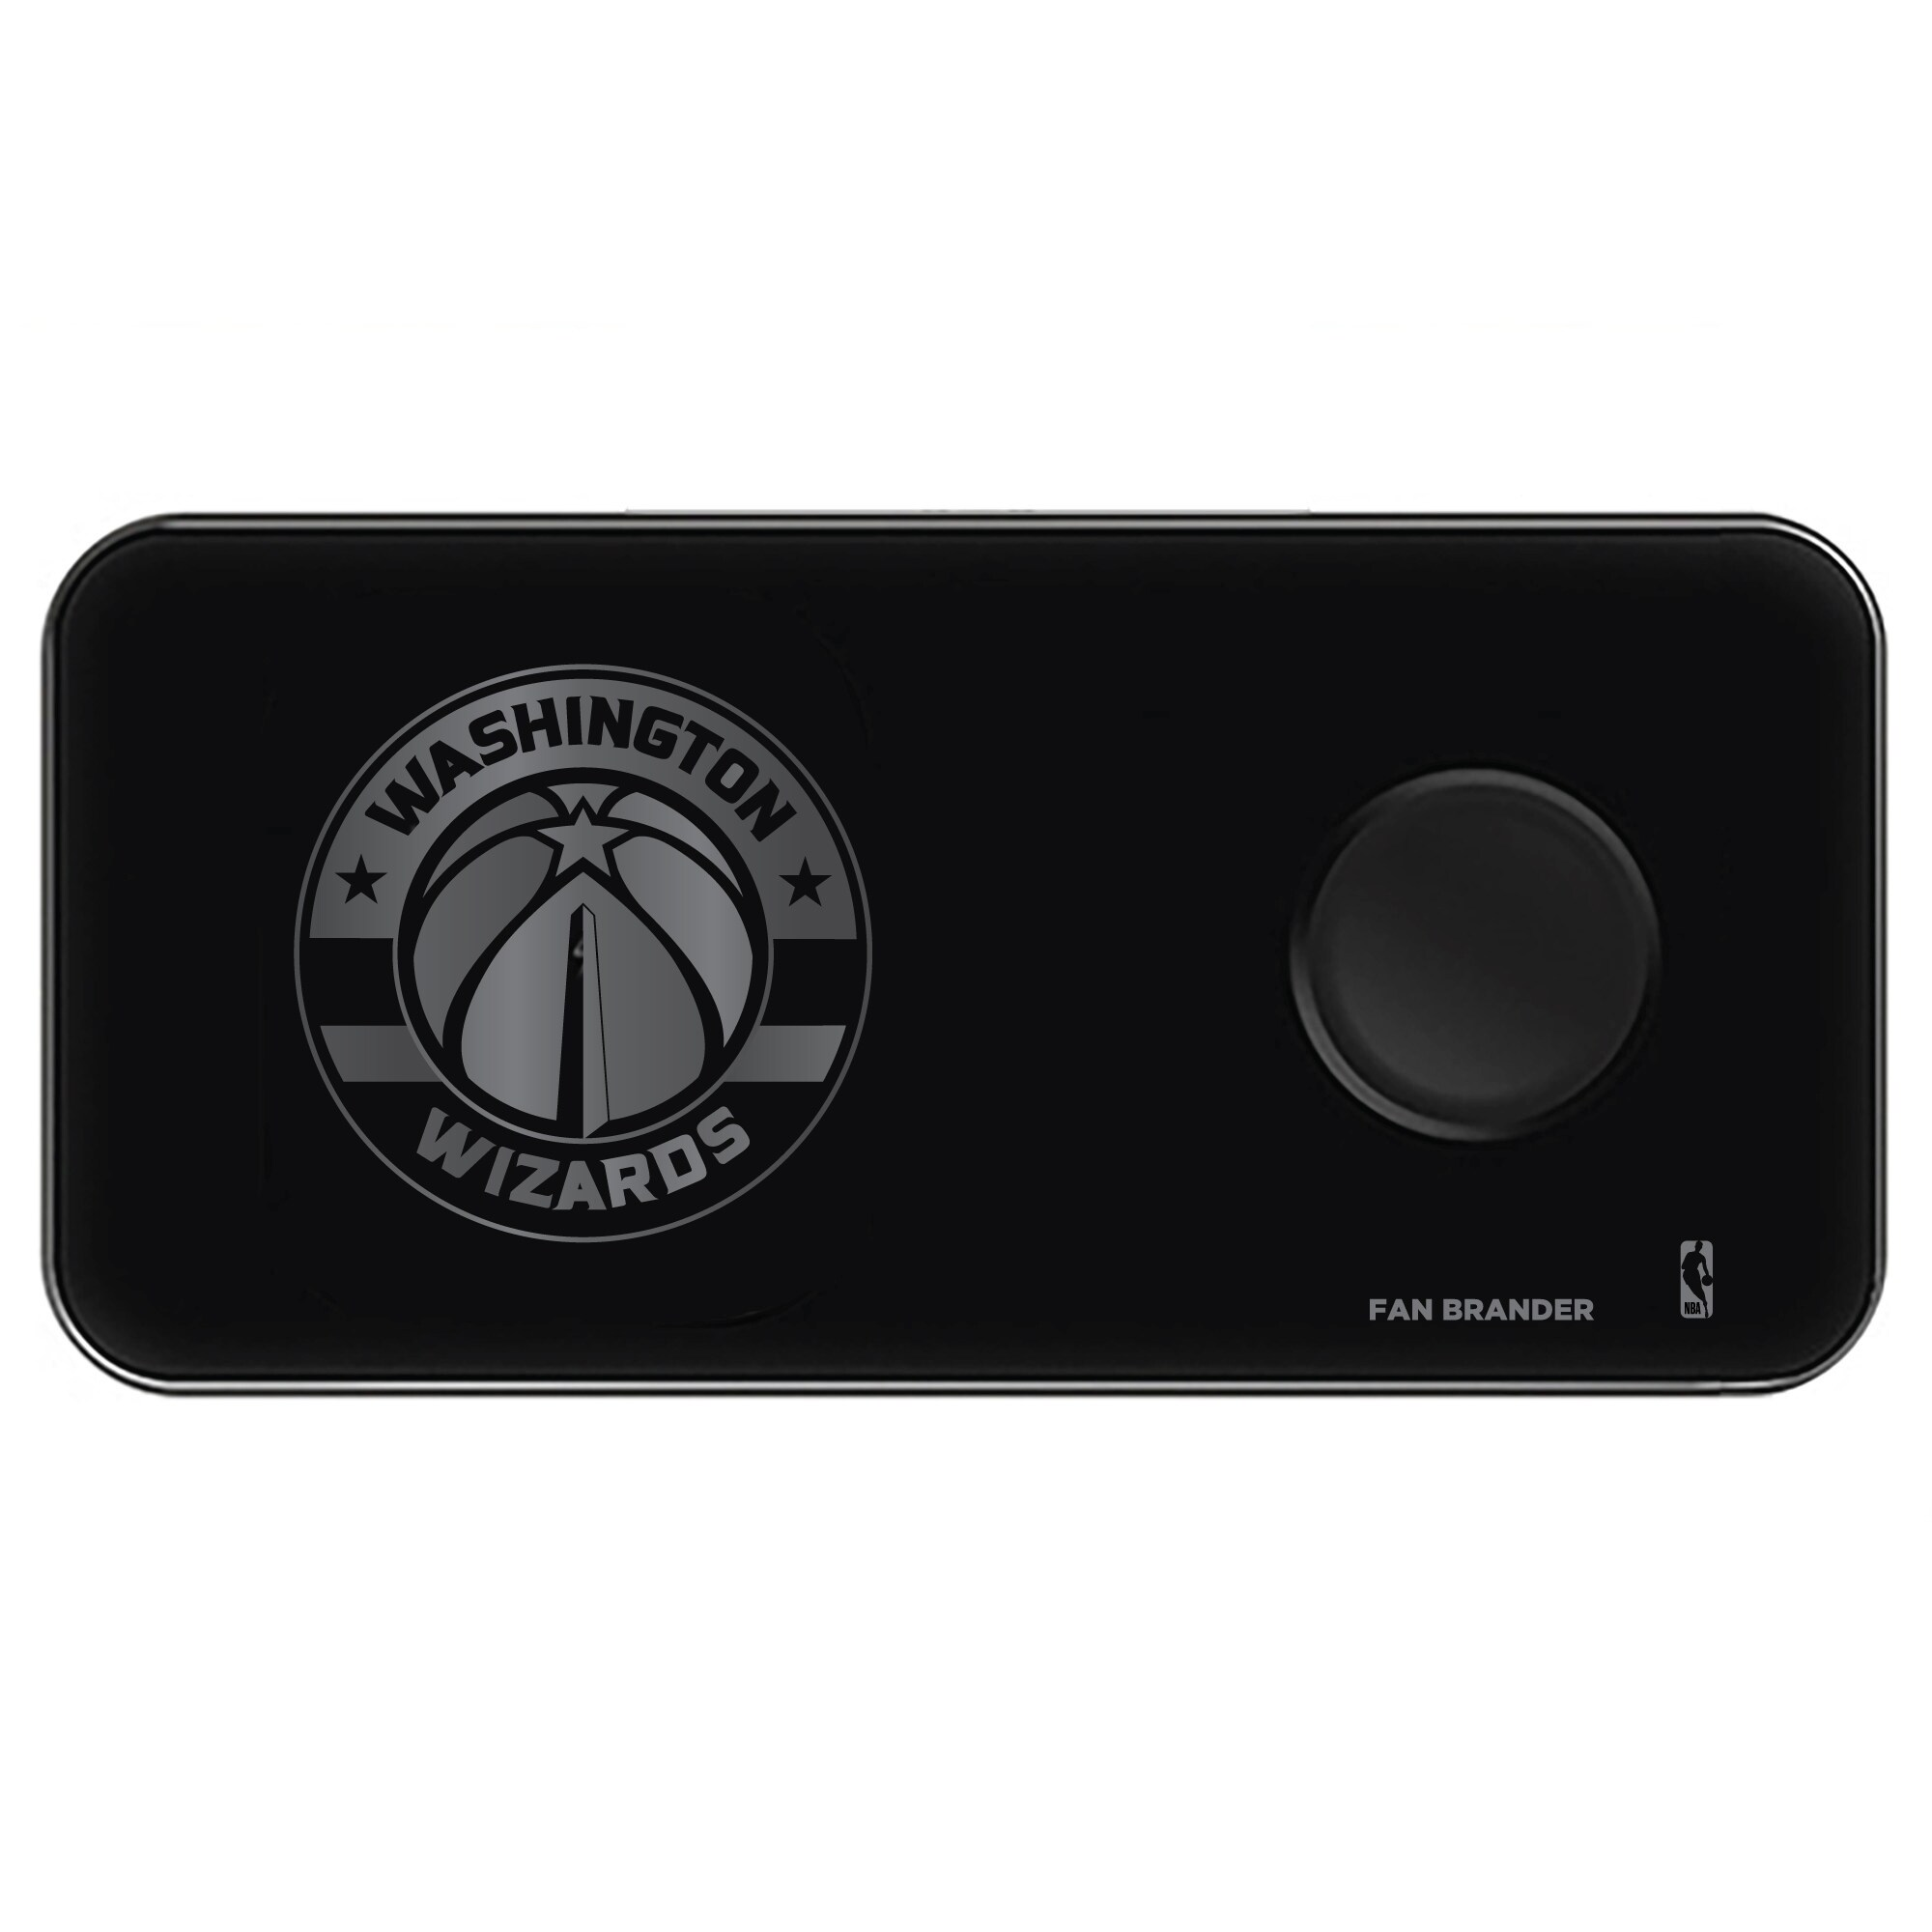 Washington Wizards 3-in-1 Glass Wireless Charge Pad - Black